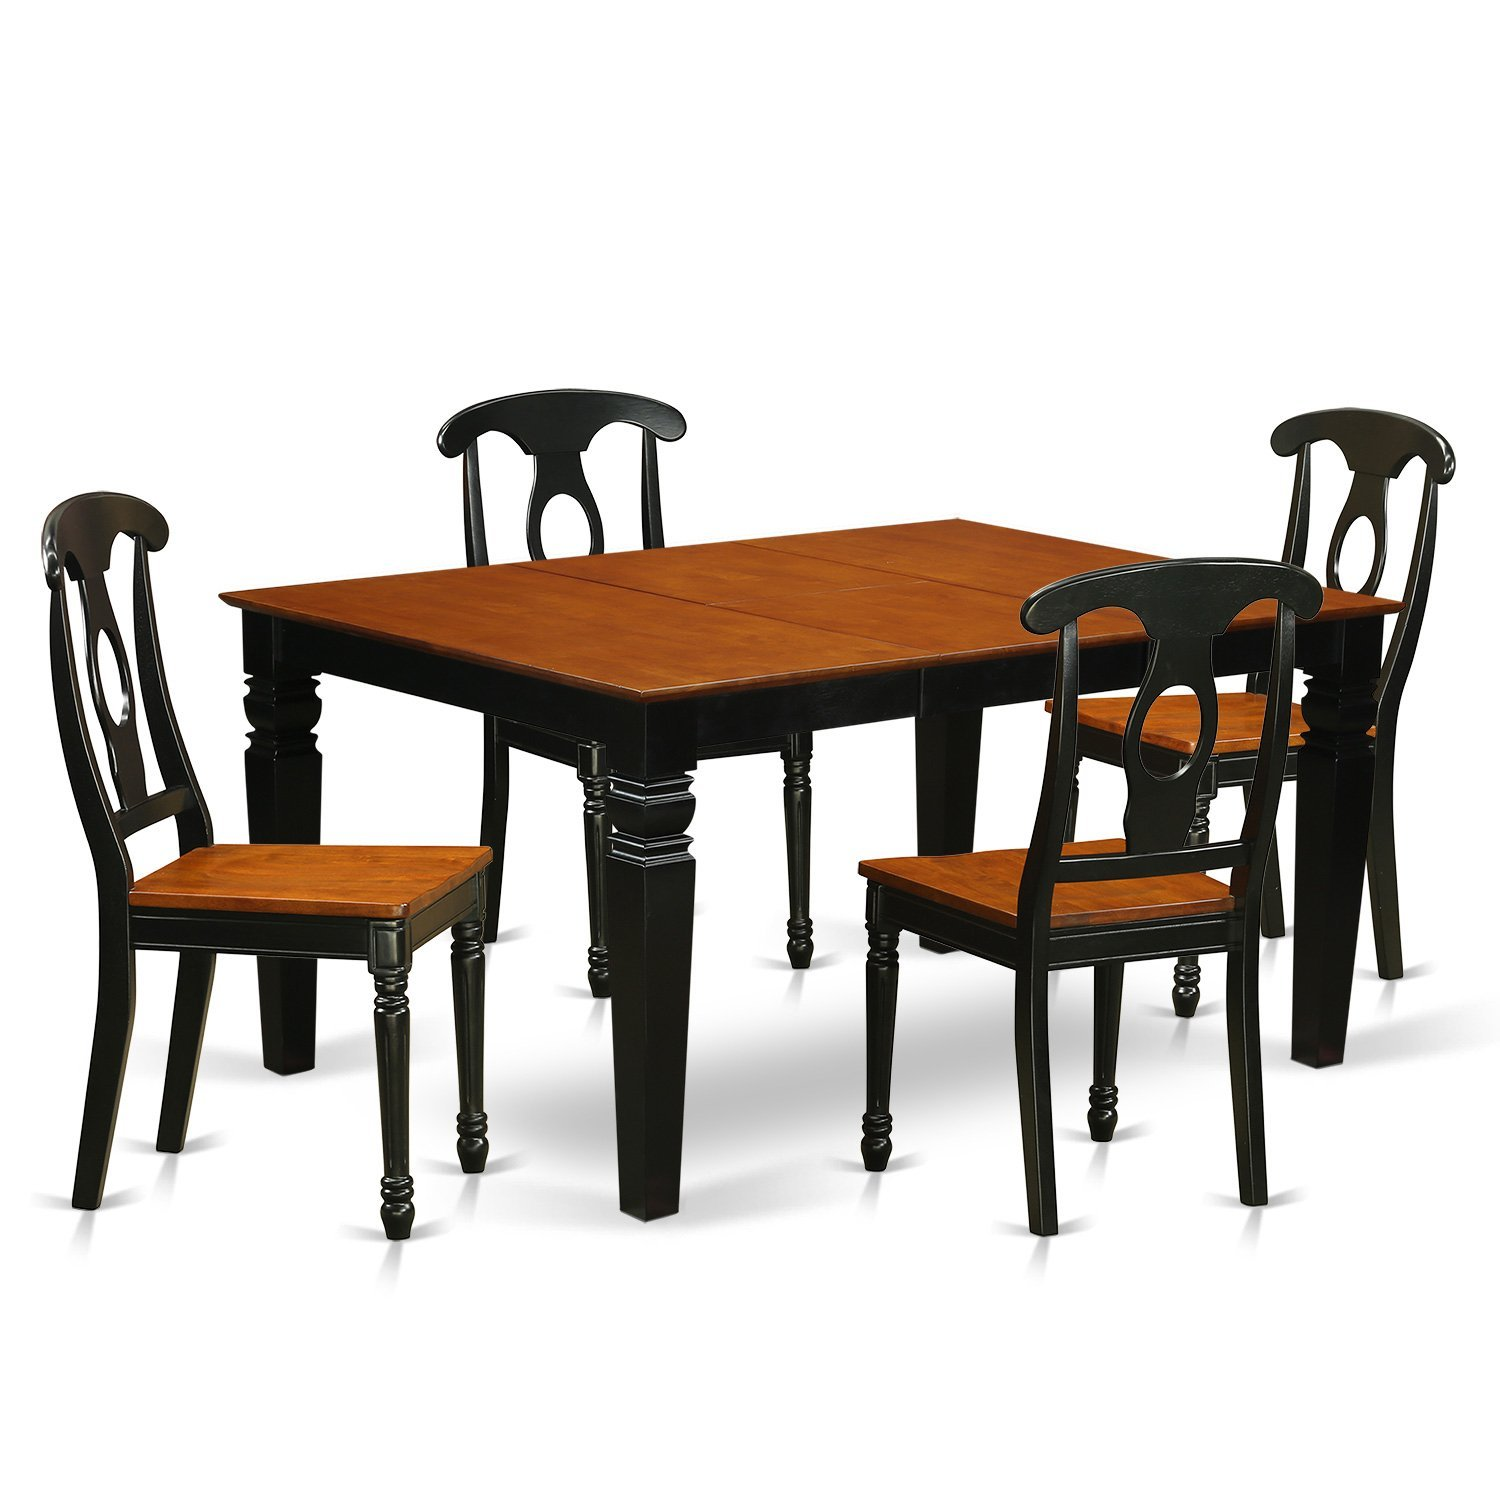 East West Furniture Weston WEKE5-BCH-W 5 Pc Set with a Kitchen Table and 4 Wood Dining Chairs, Black